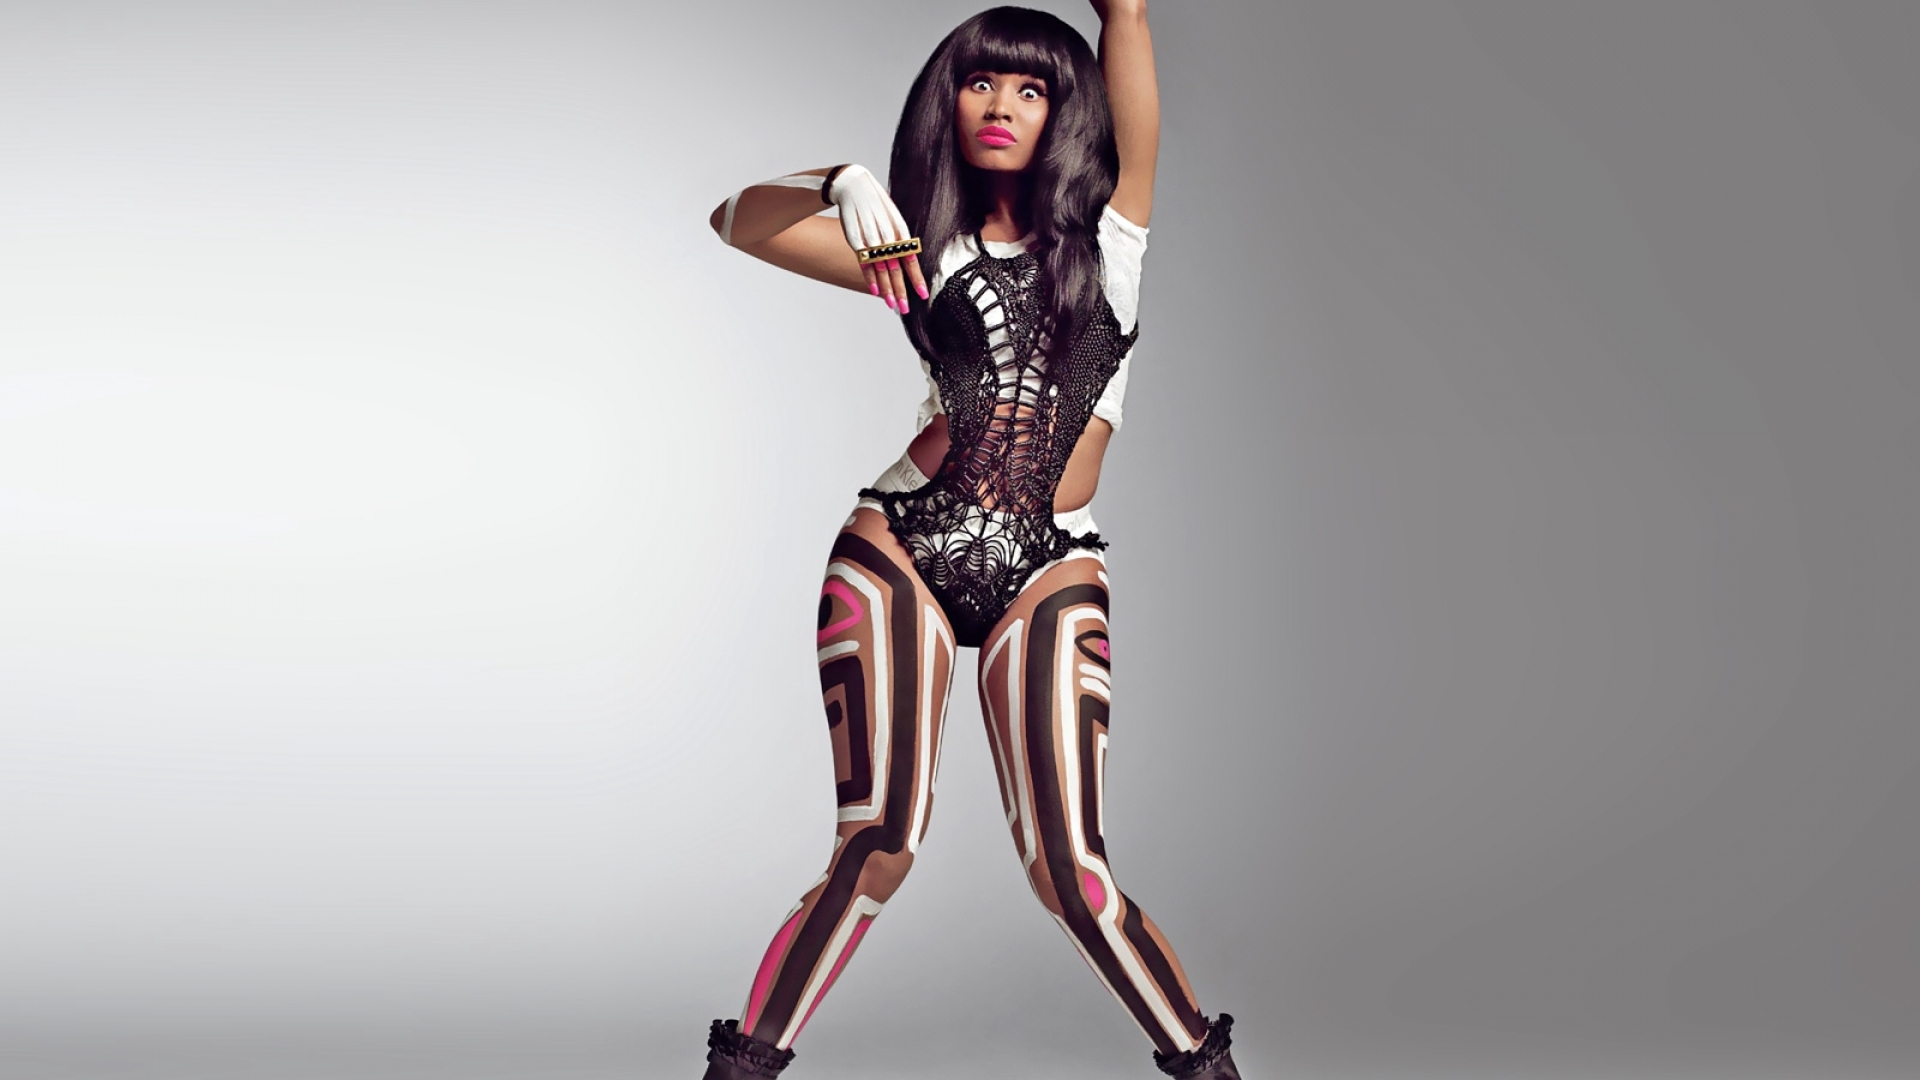 Nicki Minaj Wallpapers Images Photos Pictures Backgrounds 1920x1080